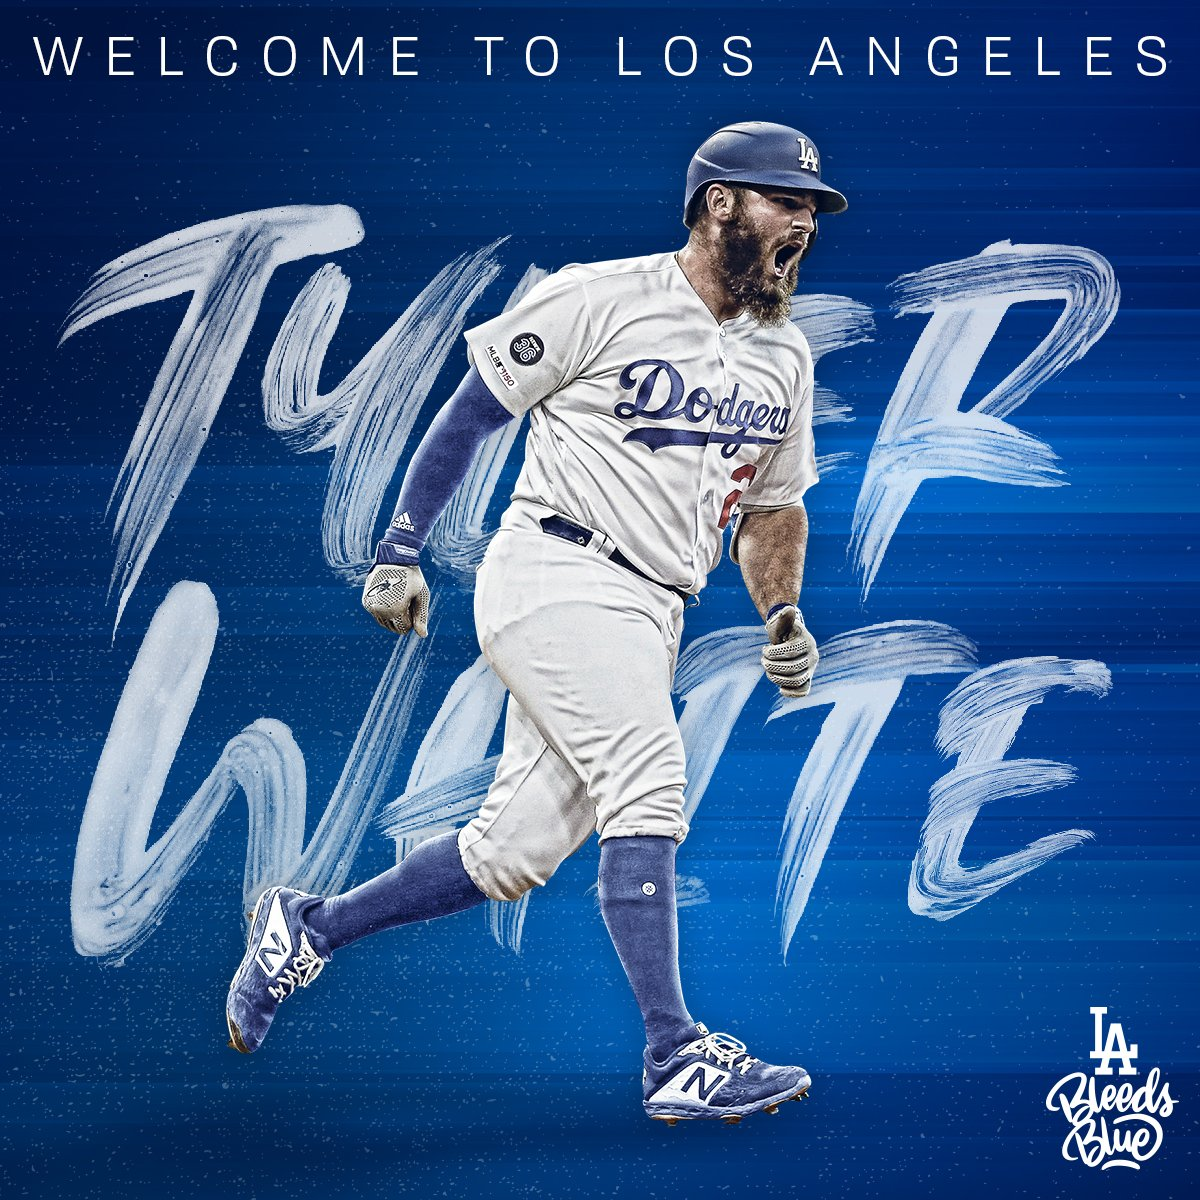 size 40 aebf8 8d00a Los Angeles Dodgers on Twitter: